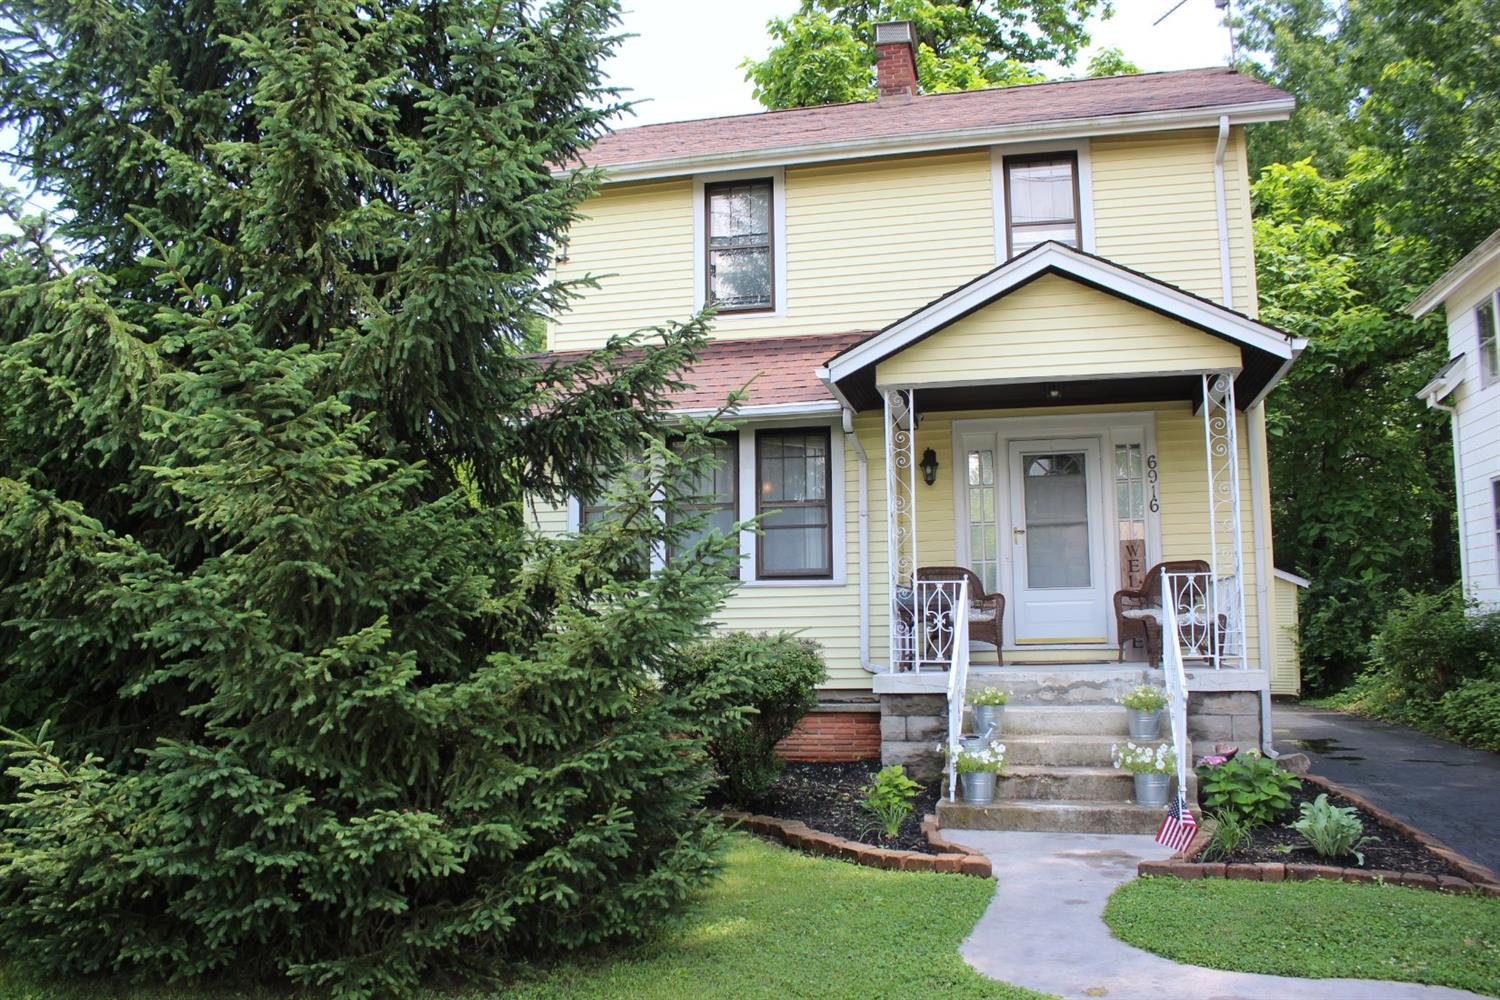 Photo 2 for 6916 Ohio Ave Silverton, OH 45236